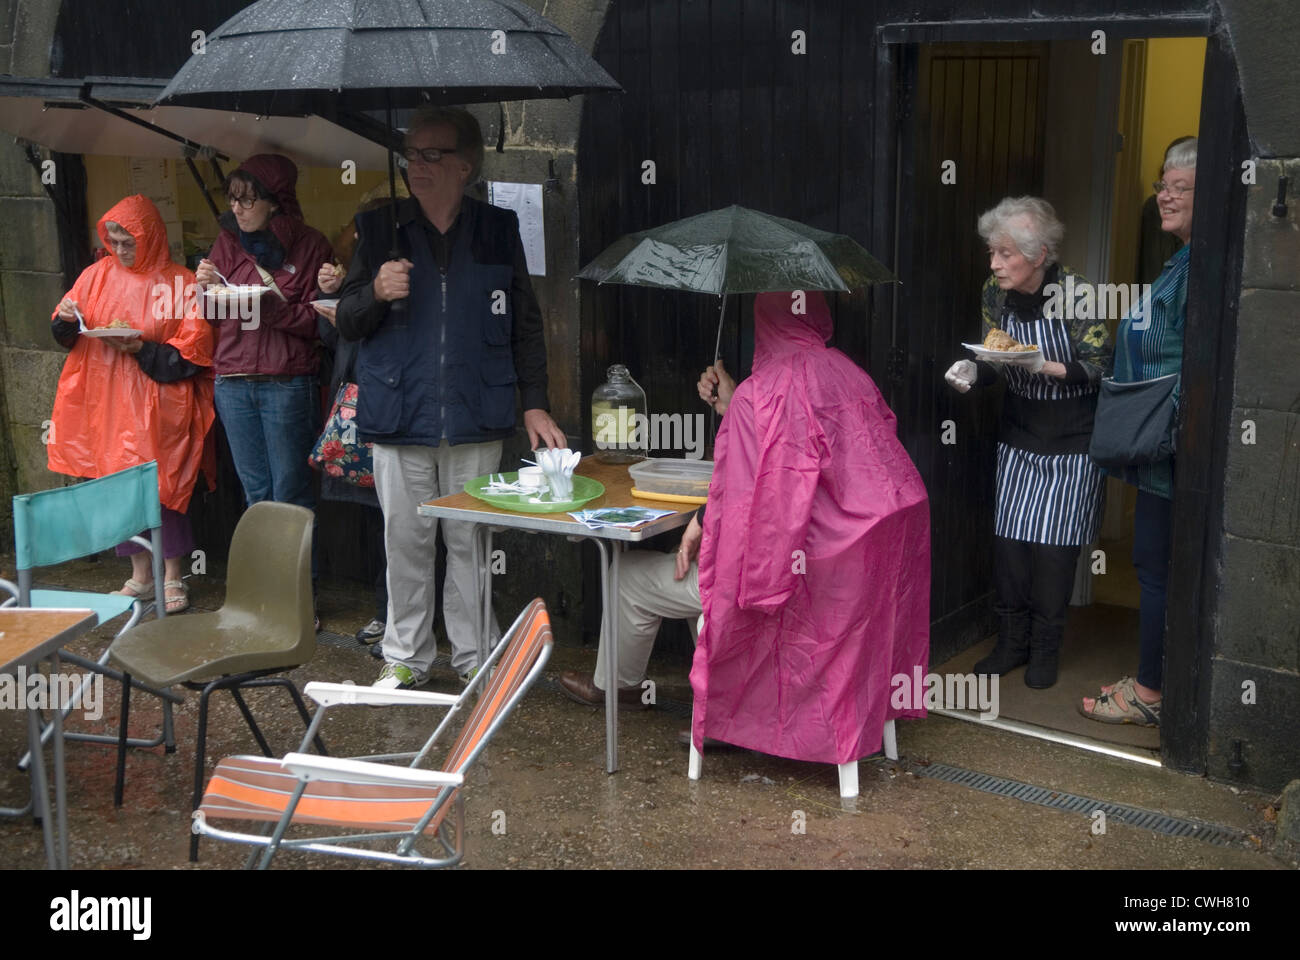 Rain uk raining England August bank holiday rained off event English bad weather HOMER SYKES - Stock Image